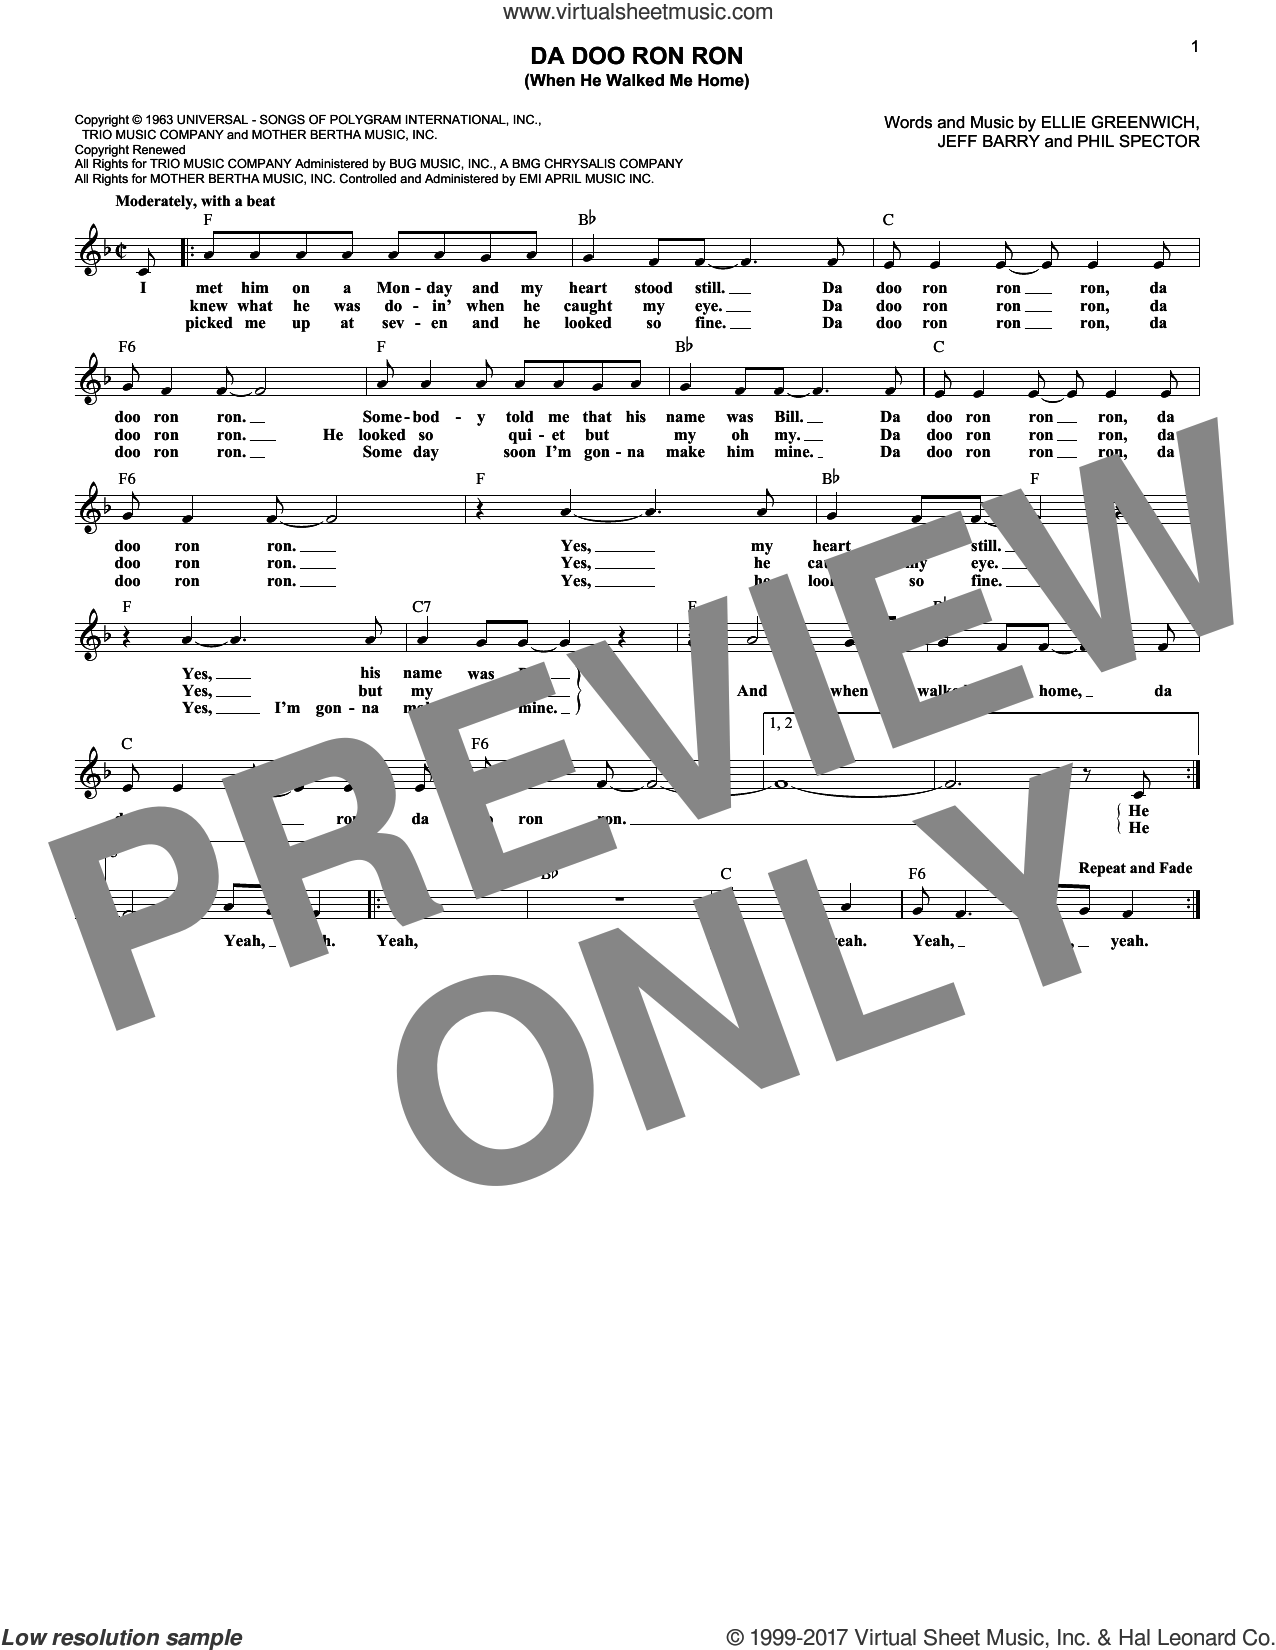 Da Doo Ron Ron (When He Walked Me Home) sheet music for voice and other instruments (fake book) by Phil Spector, The Crystals, Ellie Greenwich and Jeff Barry. Score Image Preview.